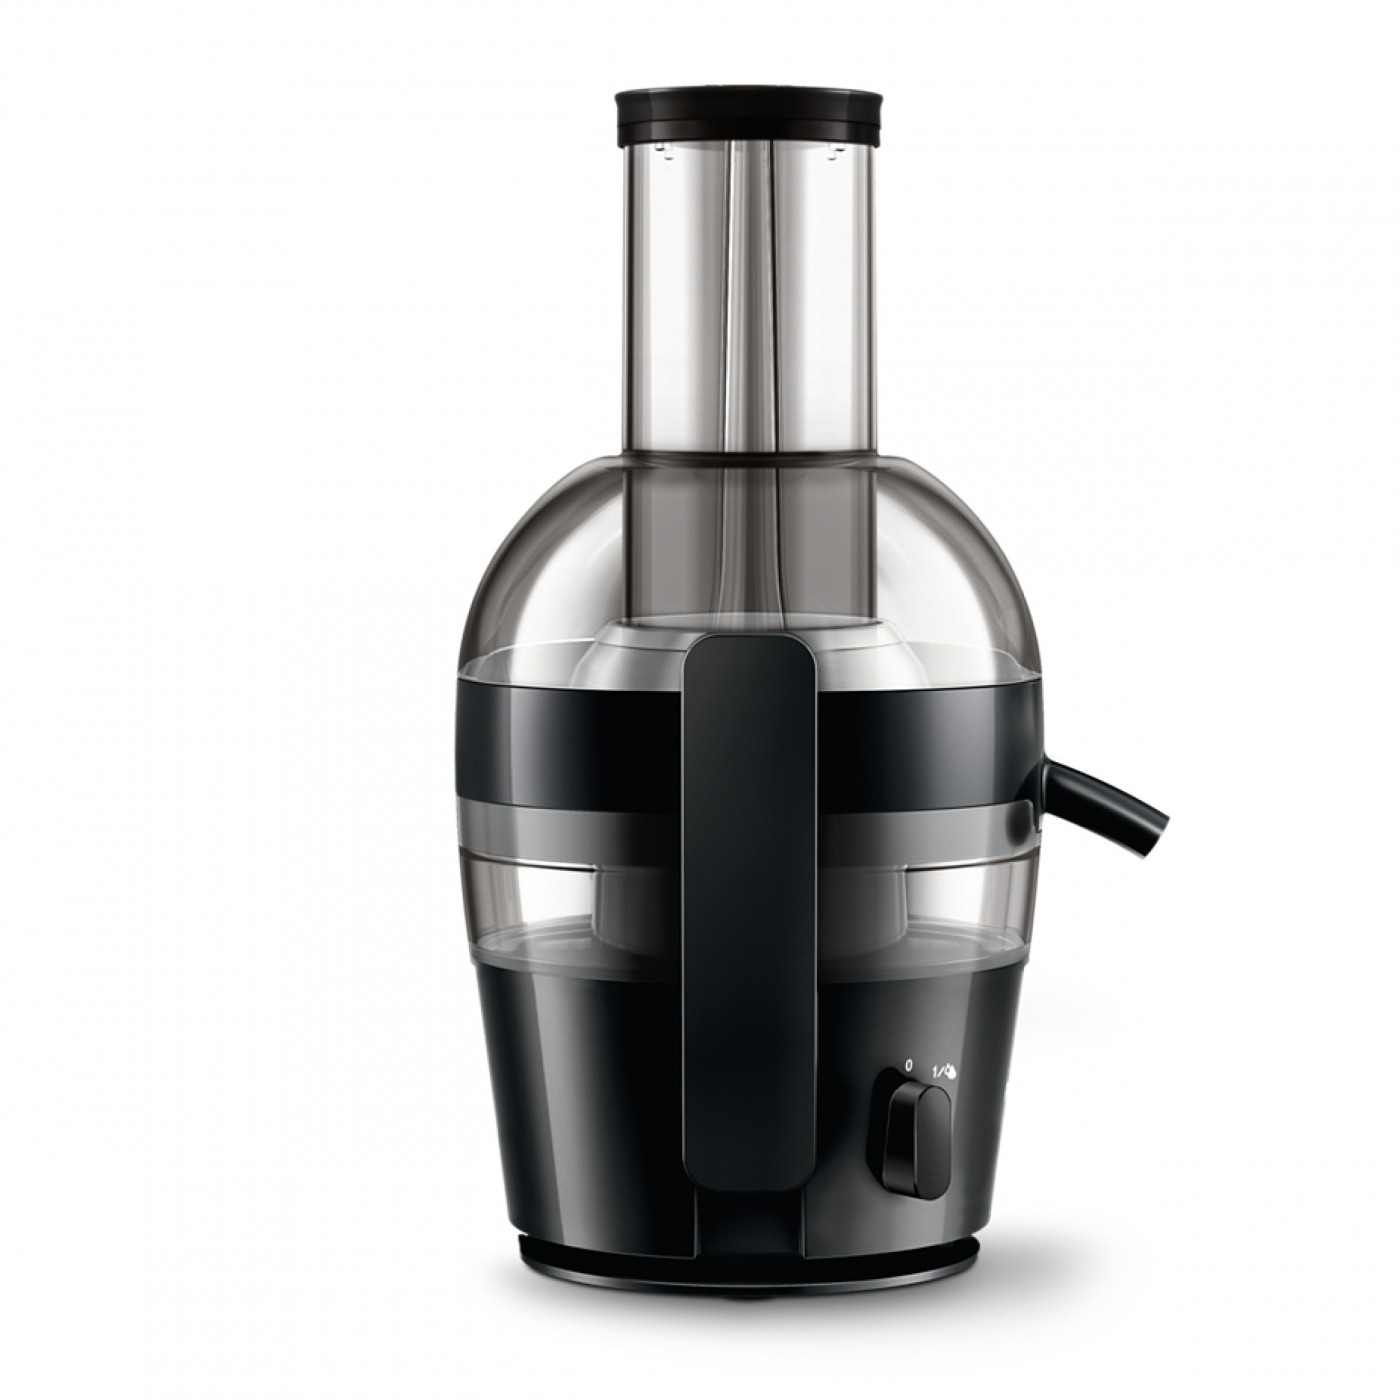 Philips Slow Juicer Hr1830 Review : philips juicer top kitchen device addition my philips juicer the